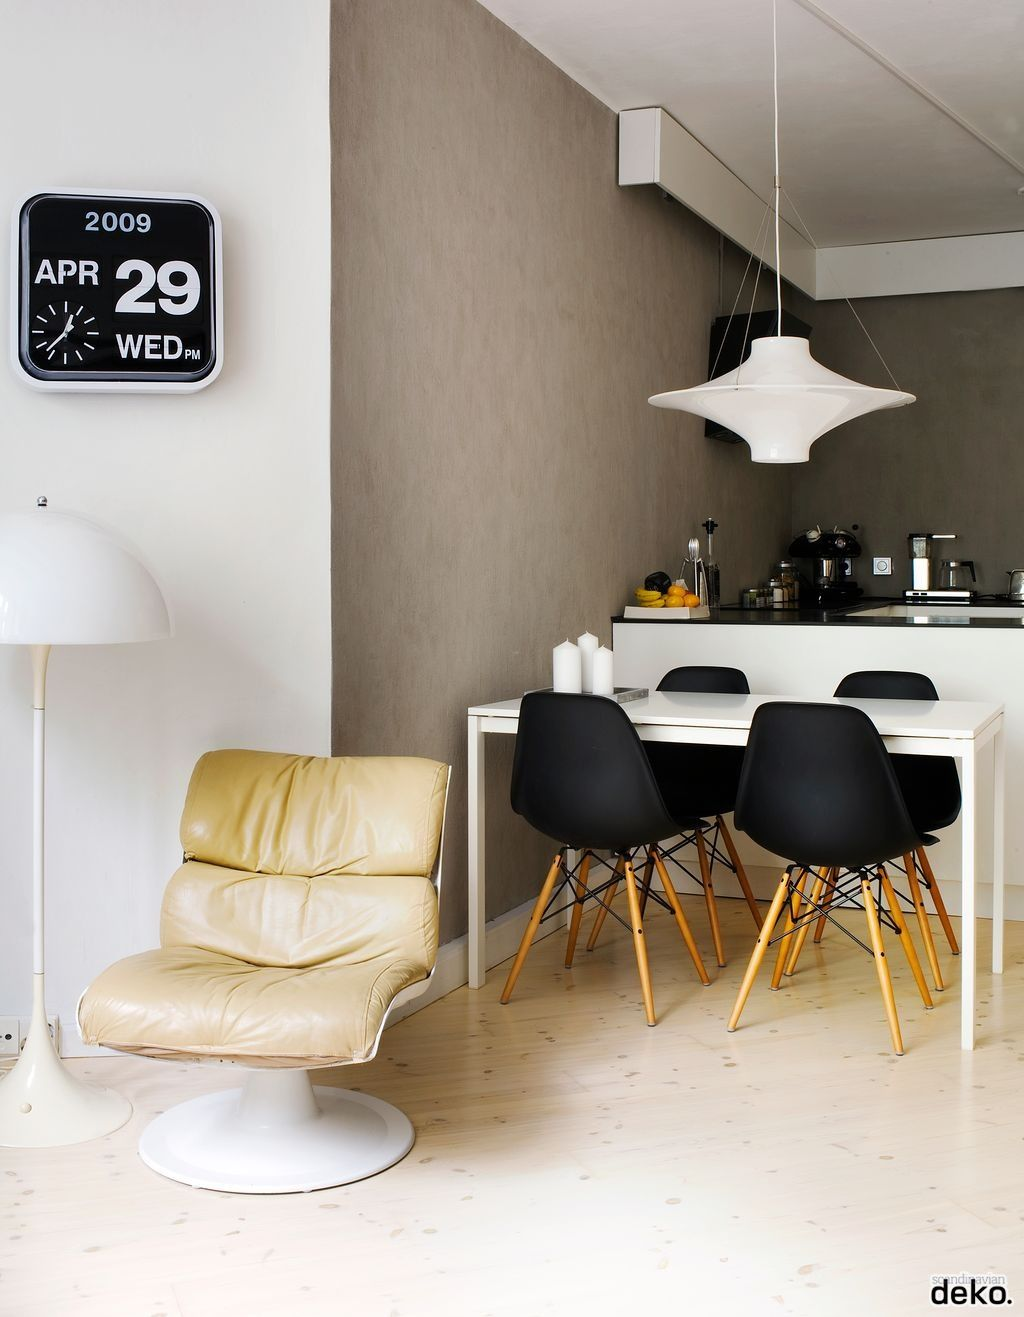 Eames Chair Esszimmer Eames Chairs In Dining Dining Room Esszimmer Innenarchitektur